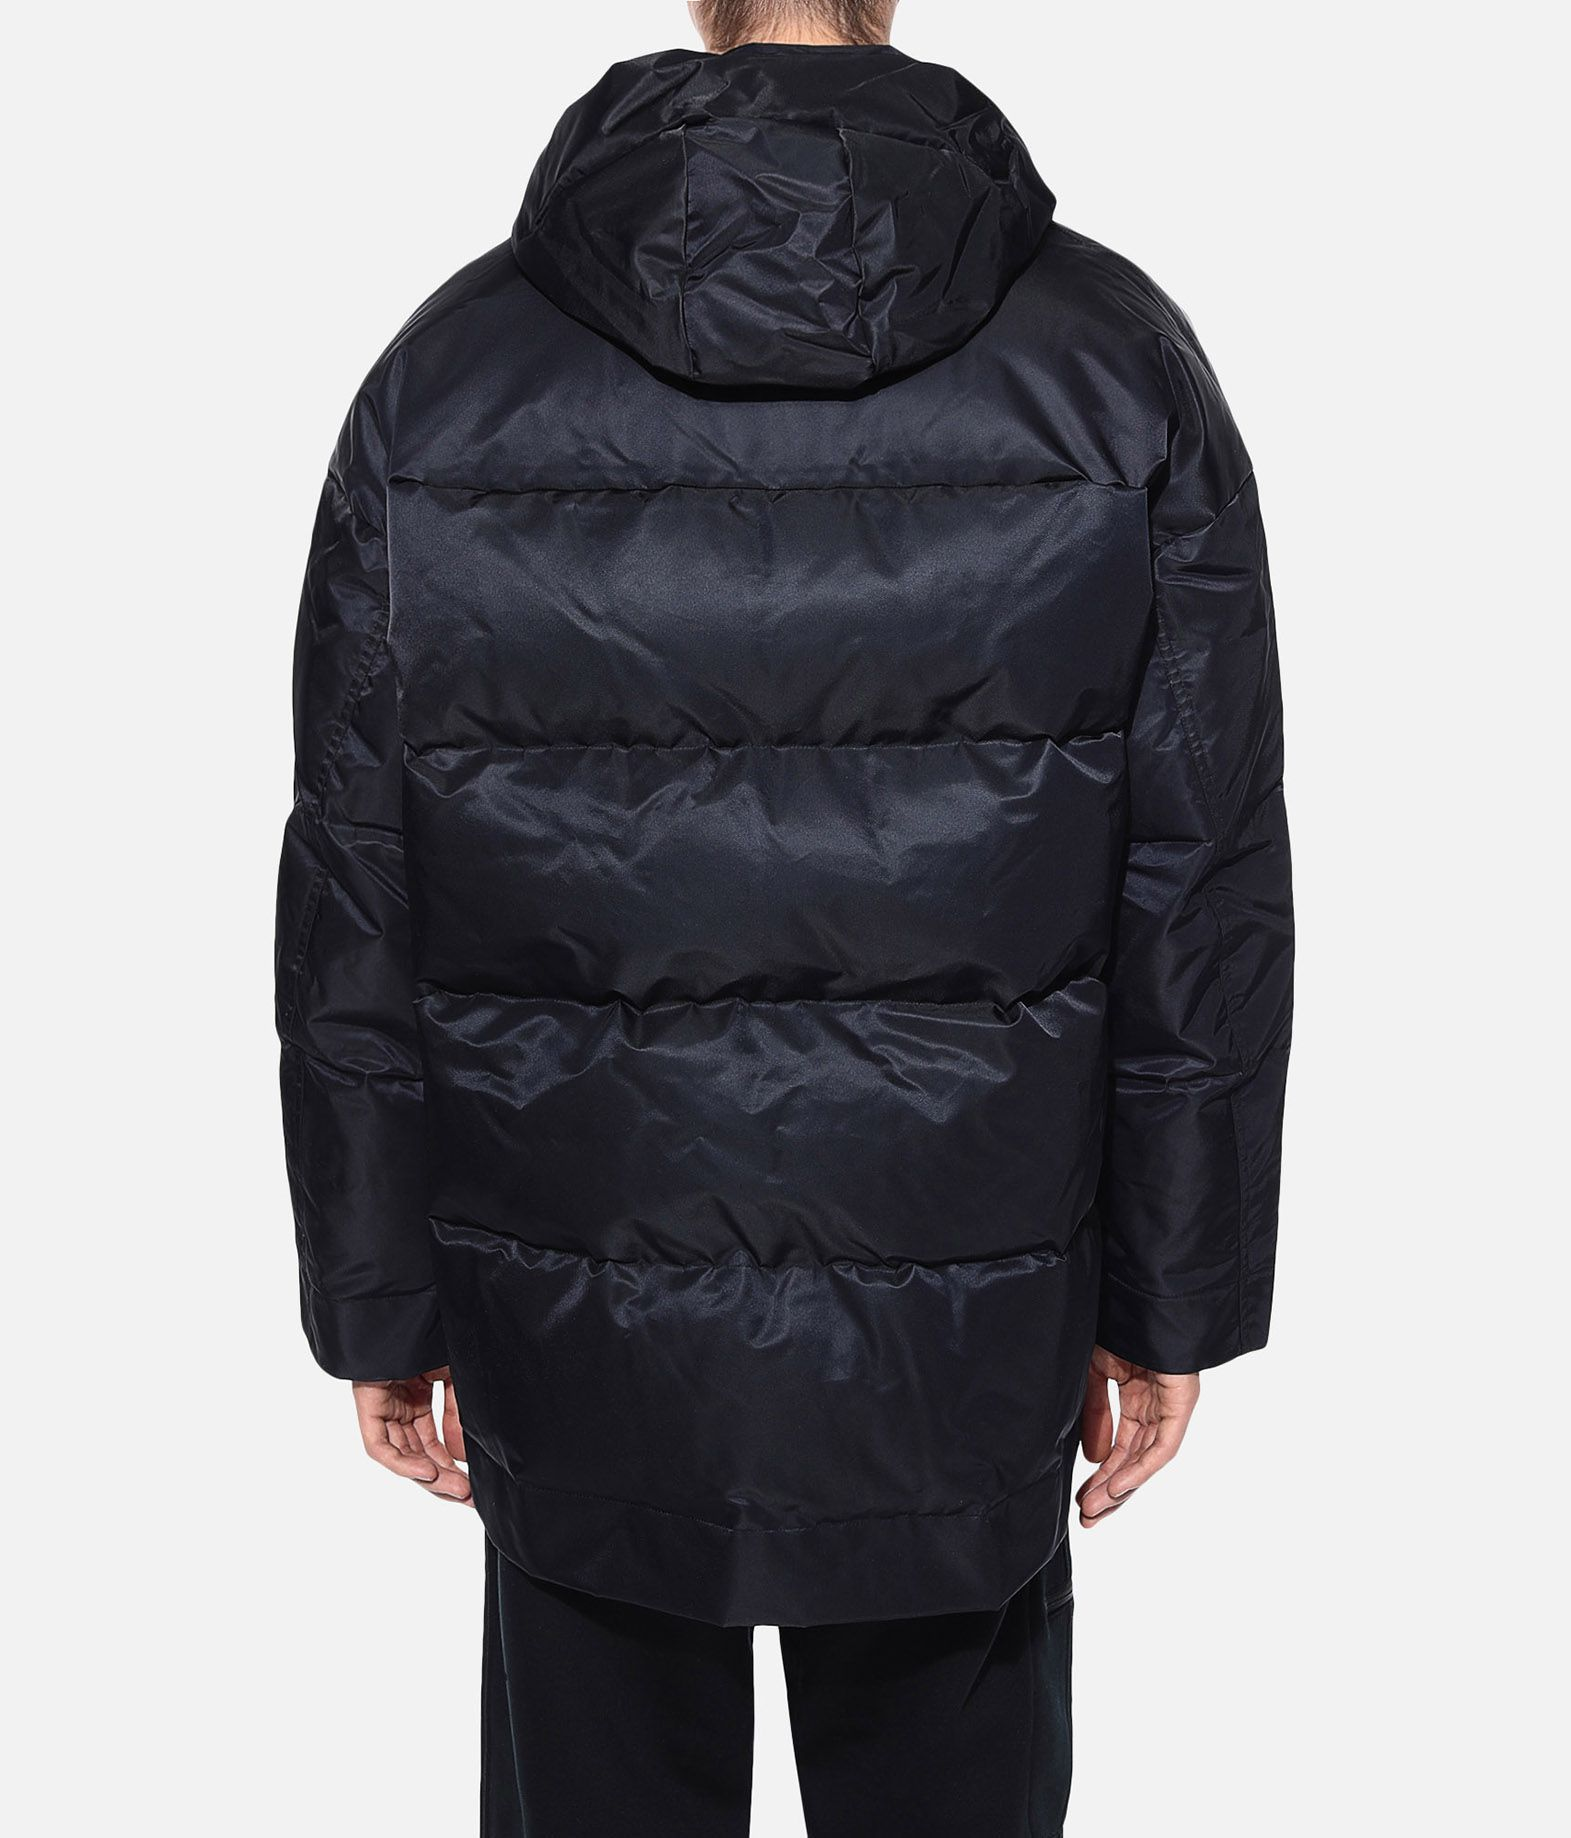 Y-3 Y-3 Engineered Down Jacket Down jacket Man d